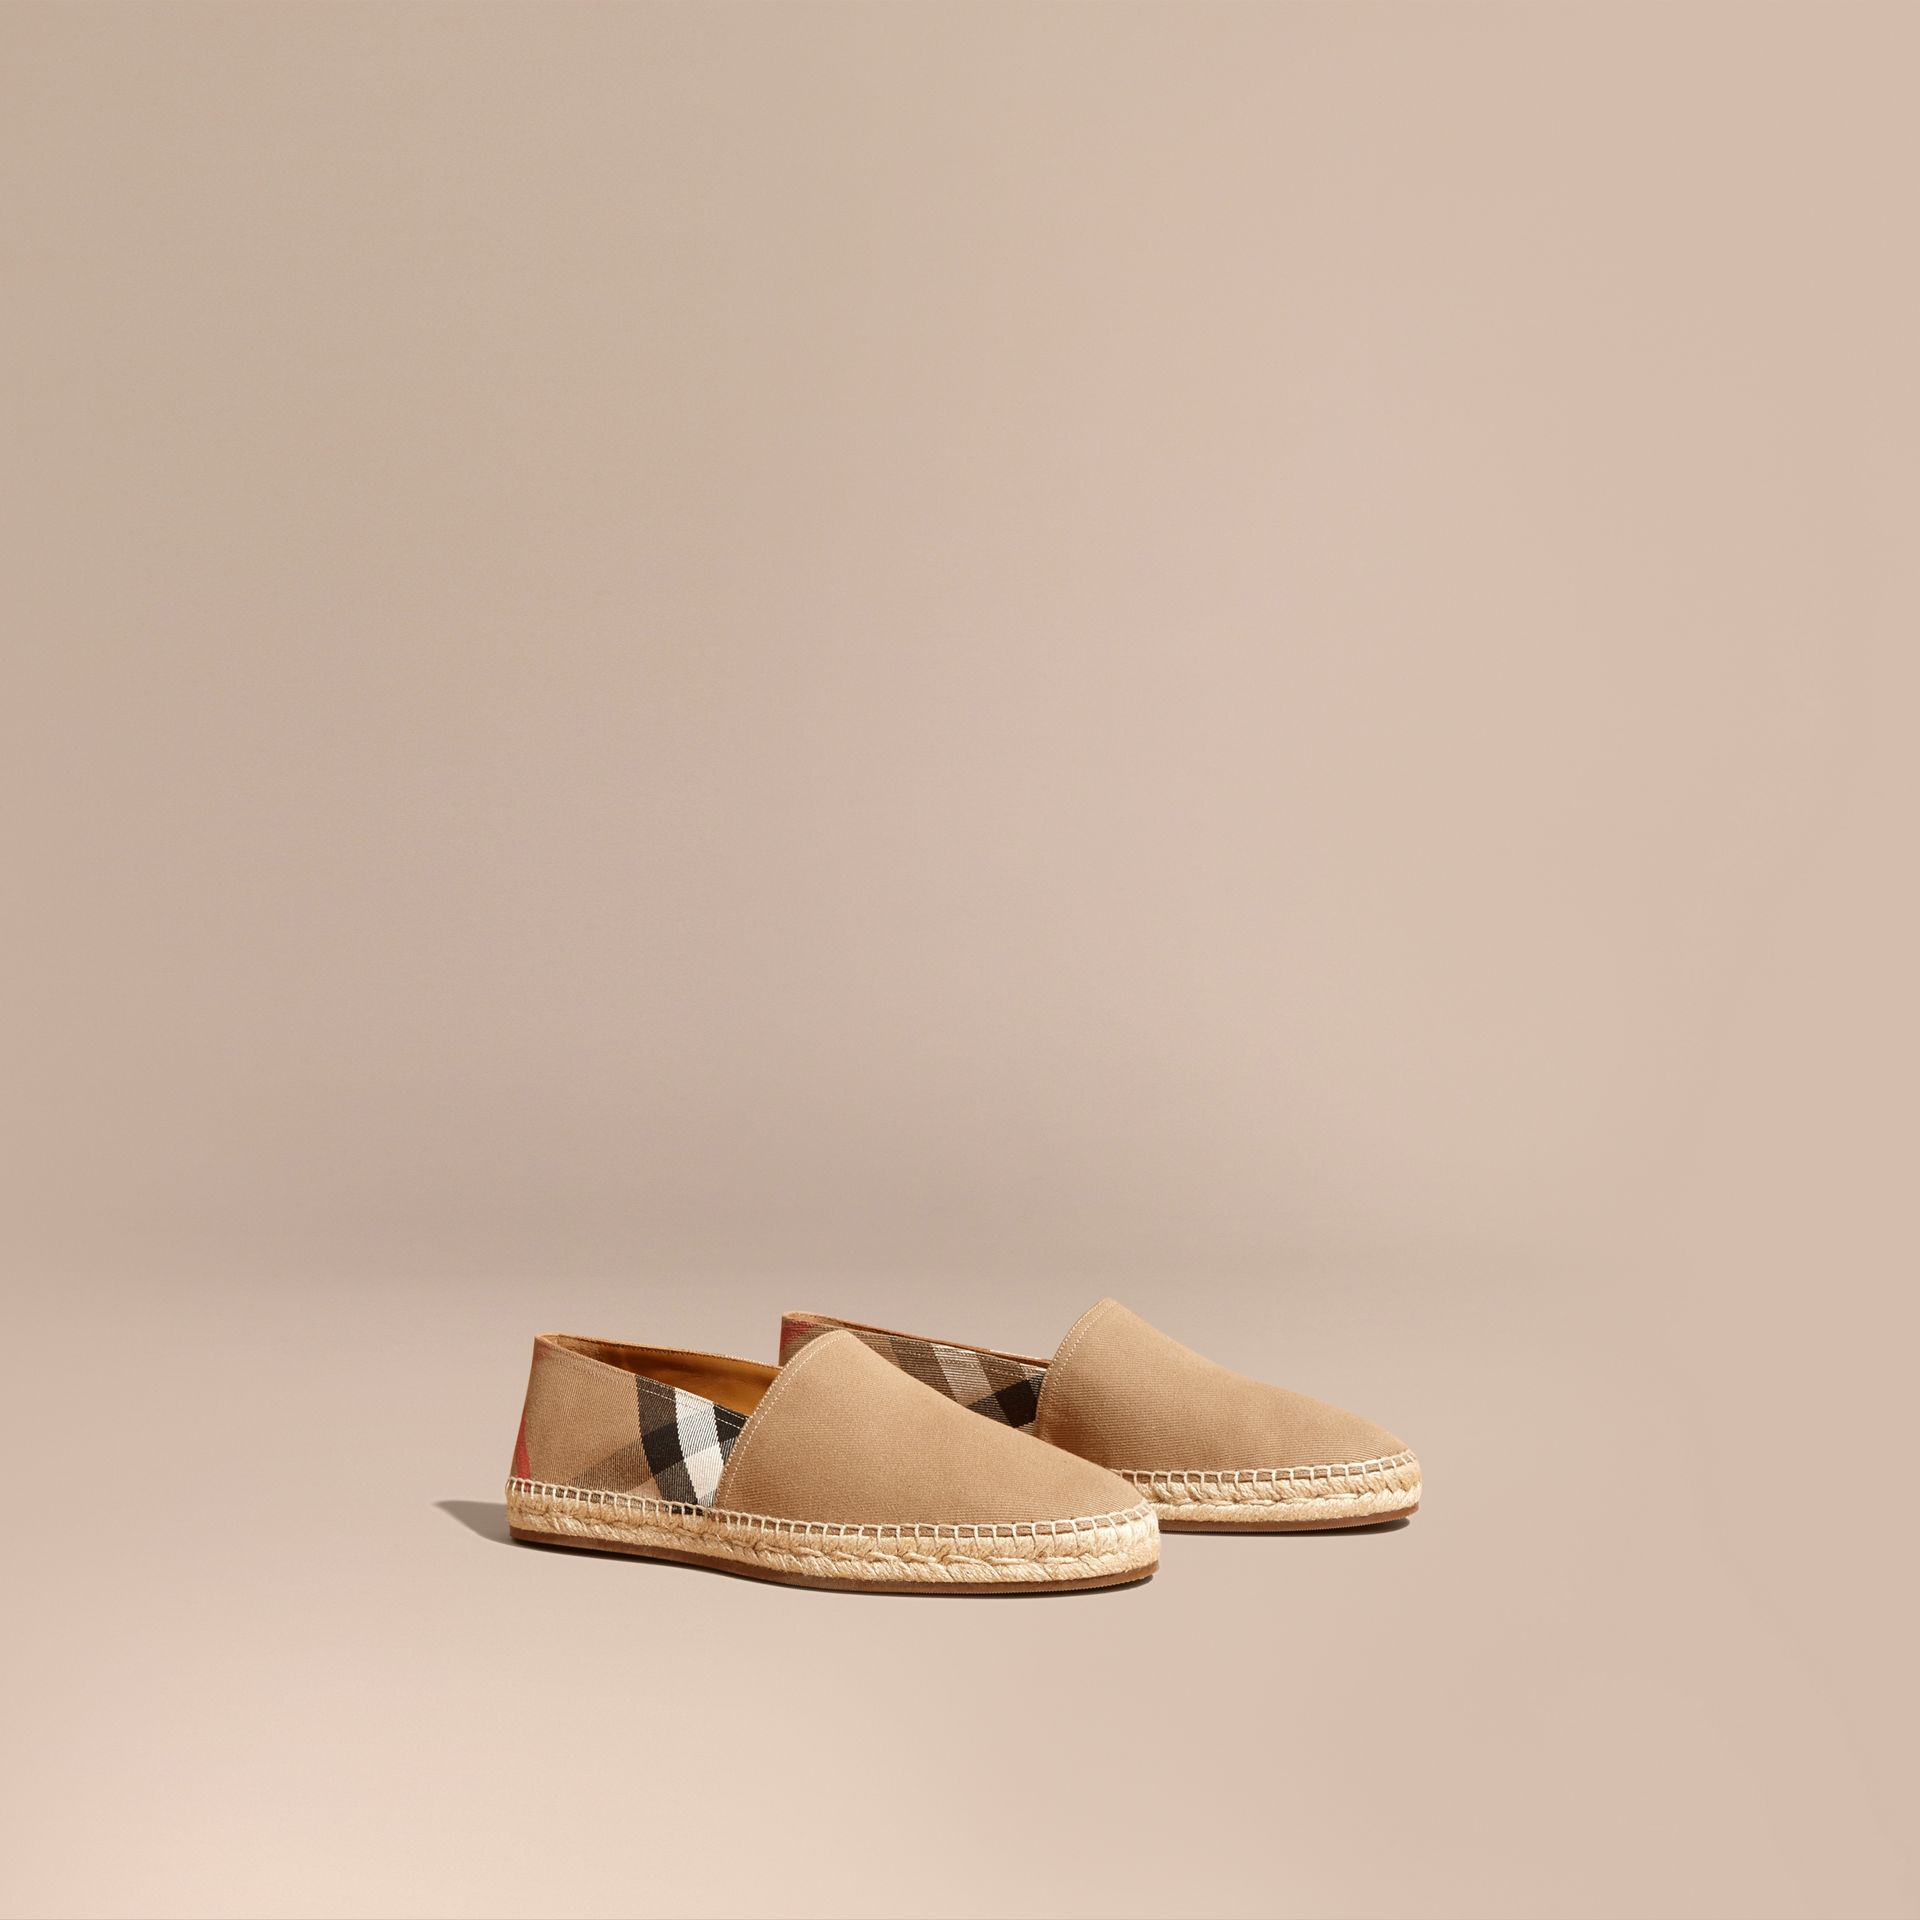 Espadrilles in Canvas Check (Classic) - Herren | Burberry - Galerie-Bild 1